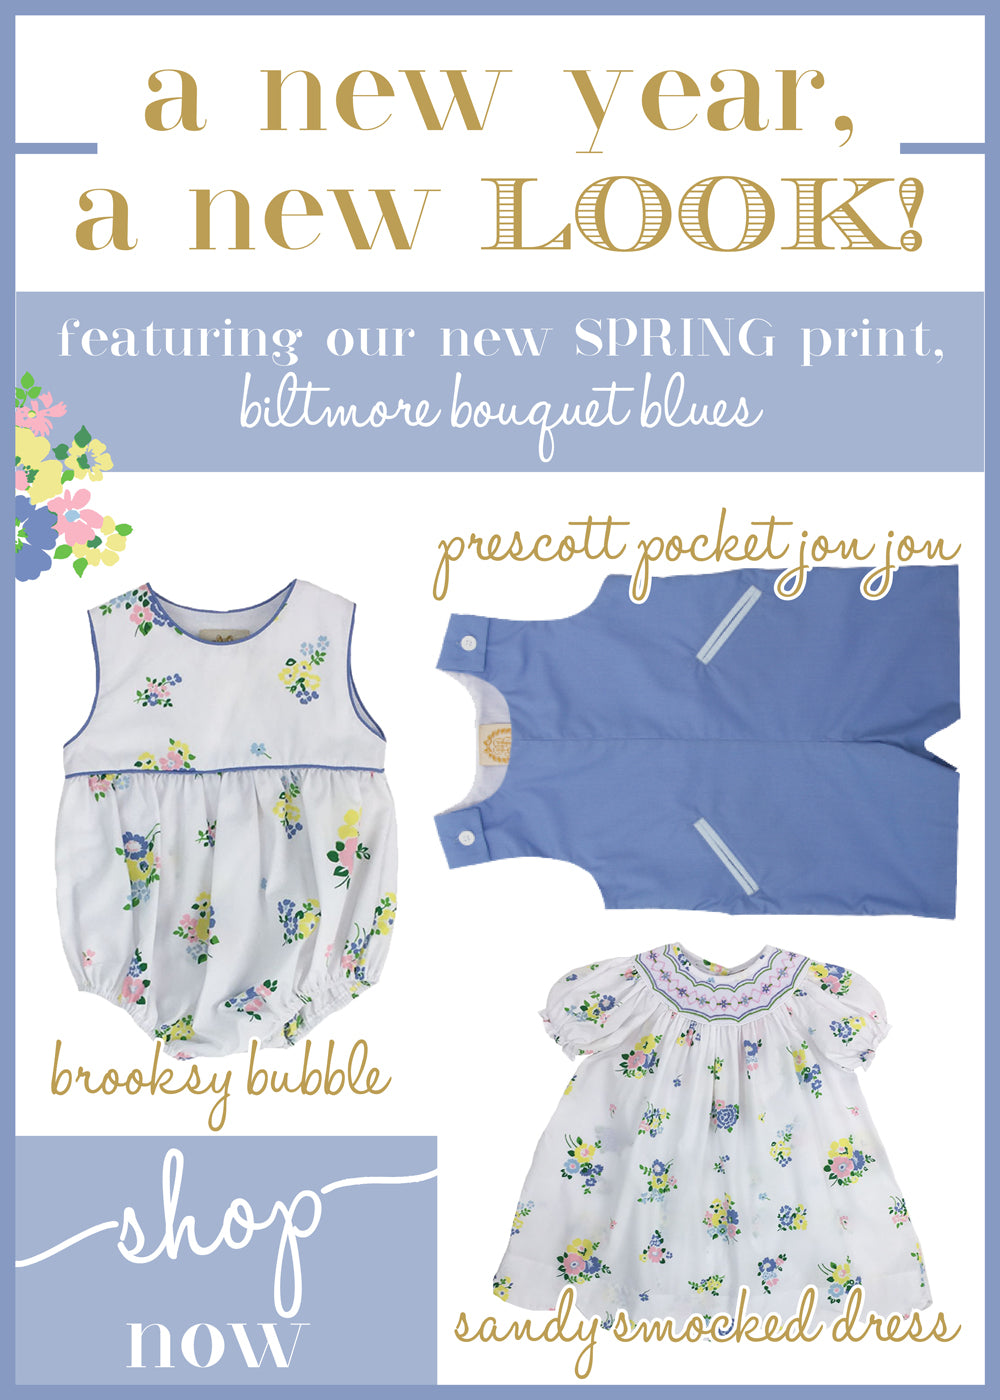 A New Year, A New Look: Spring 2018 -- Biltmore Bouquet Blues | The Beaufort Bonnet Company | The Well To Do Review